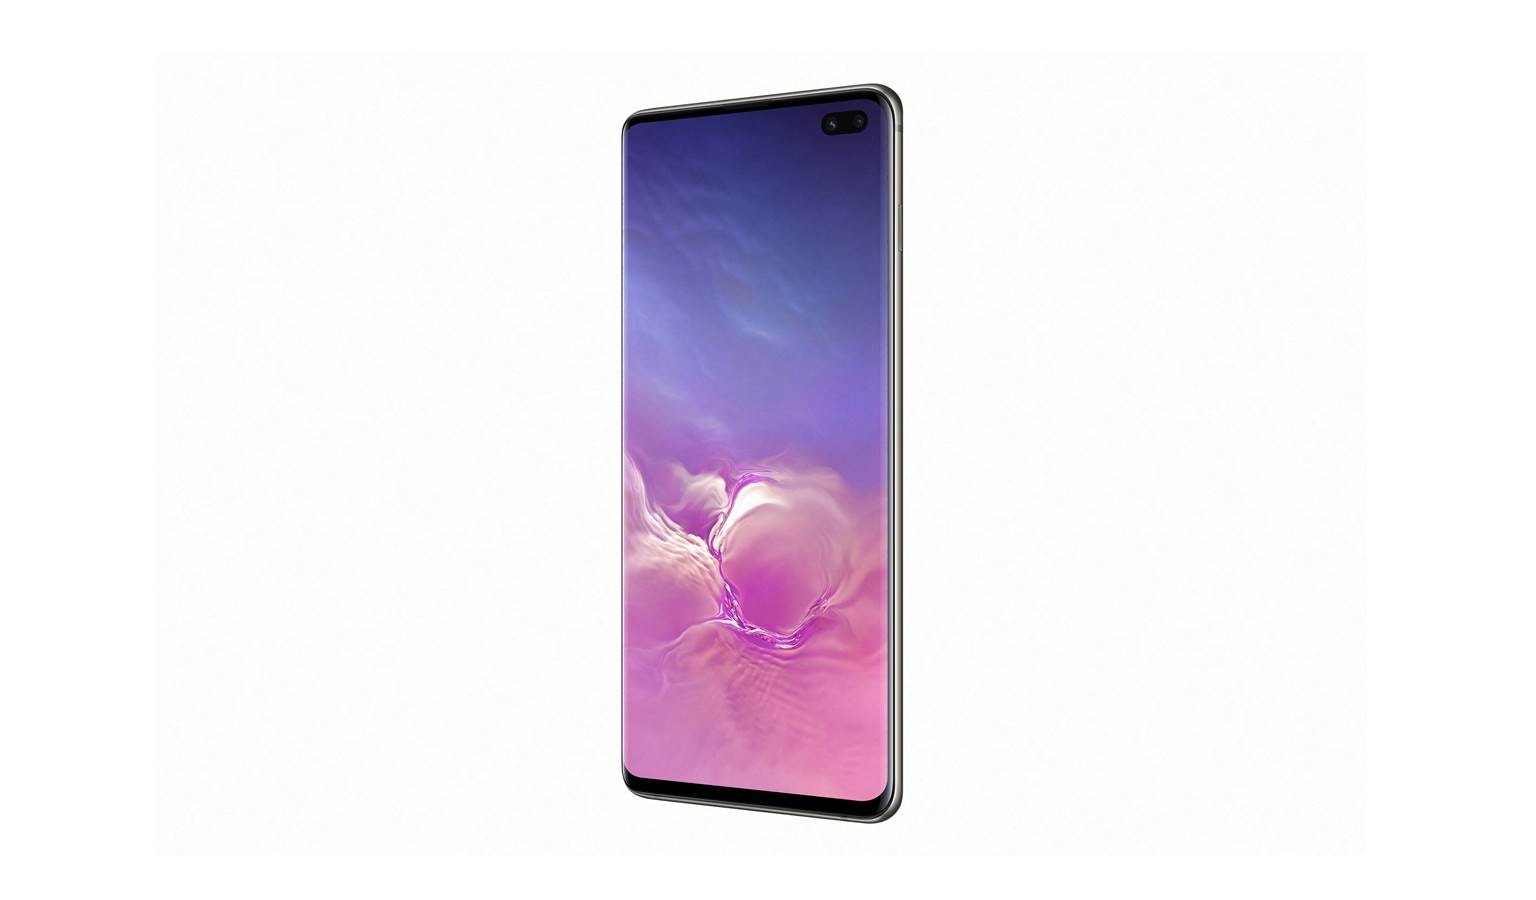 Samsung Galaxy S10+ Smartphone - Ceramic Black (Left)